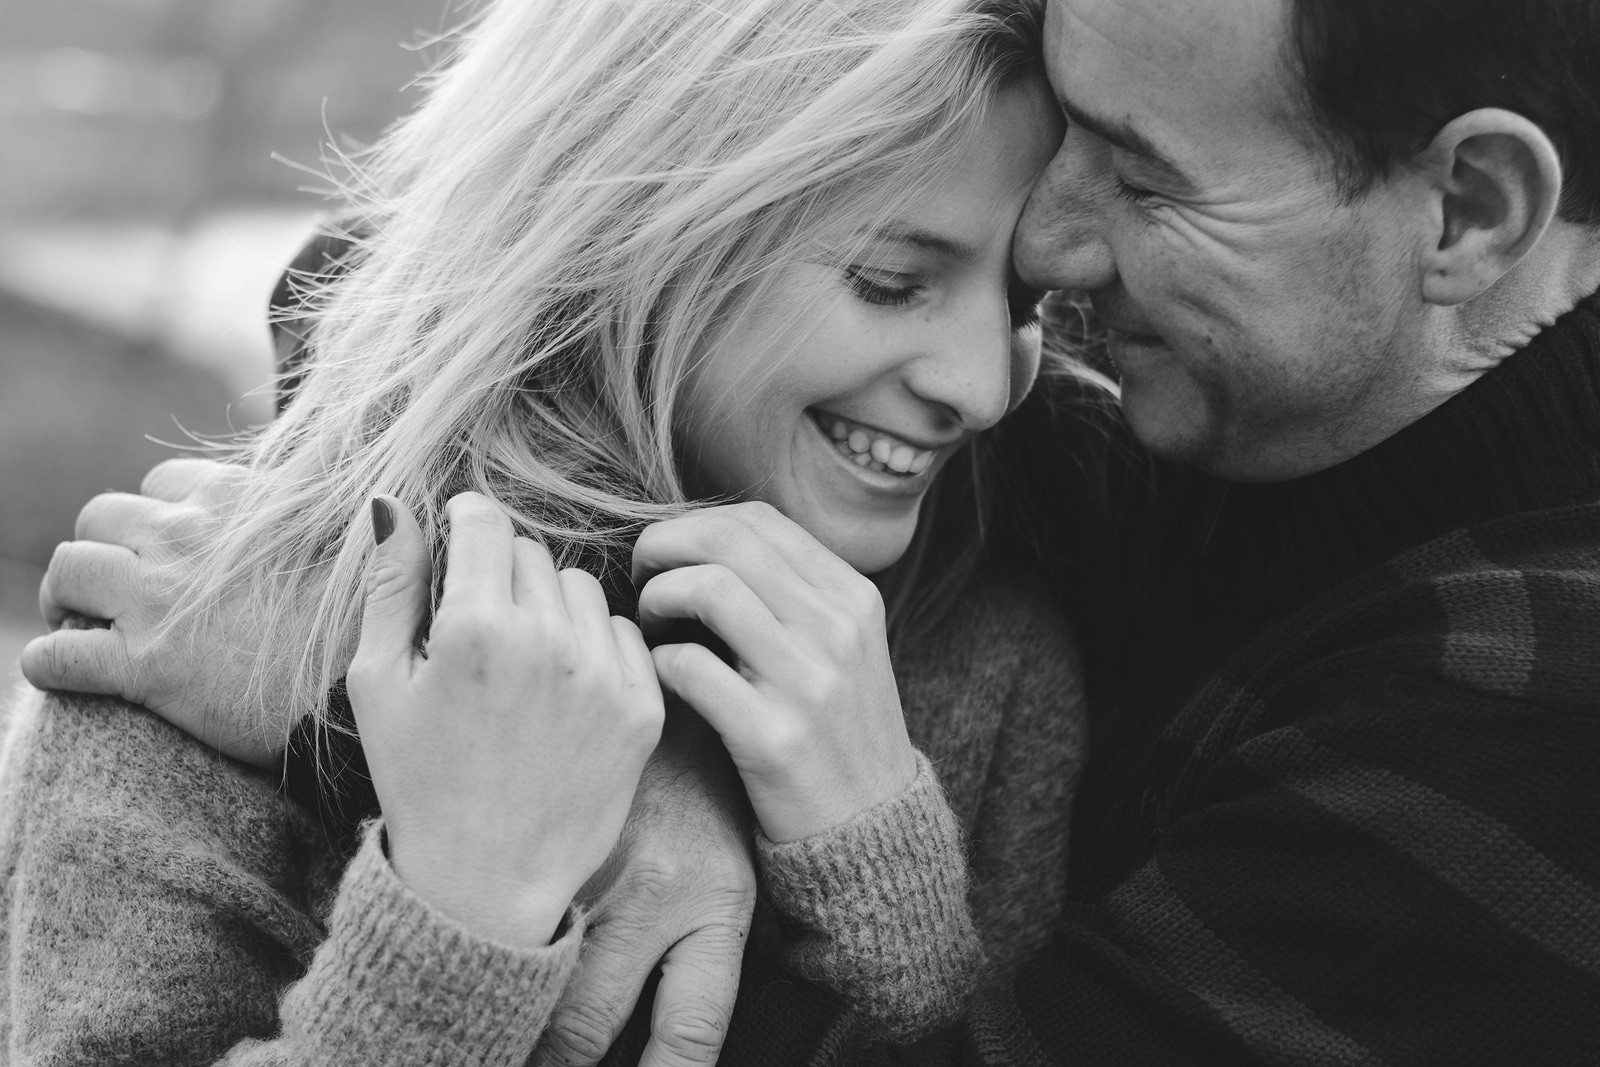 Young couple in love hug each other. Smiling couple in love outdoors. Couple face to face on Valentine's Day